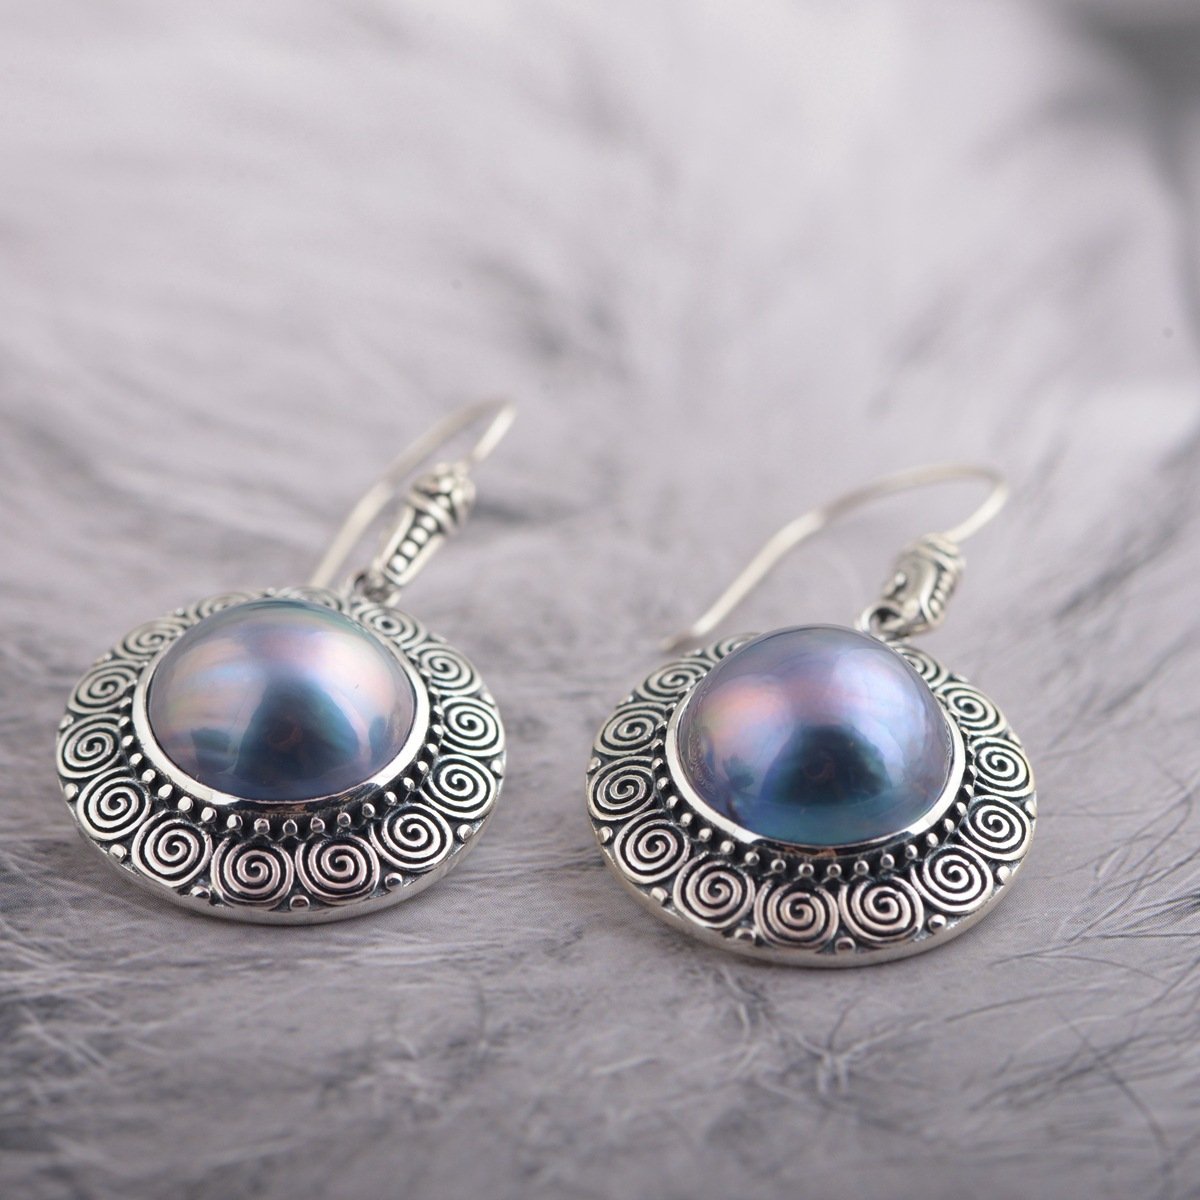 цены 2018 New Jewelry Real Pearl Earrings S925 Pure Silver Wholesale Archaize Process Female Present New Products